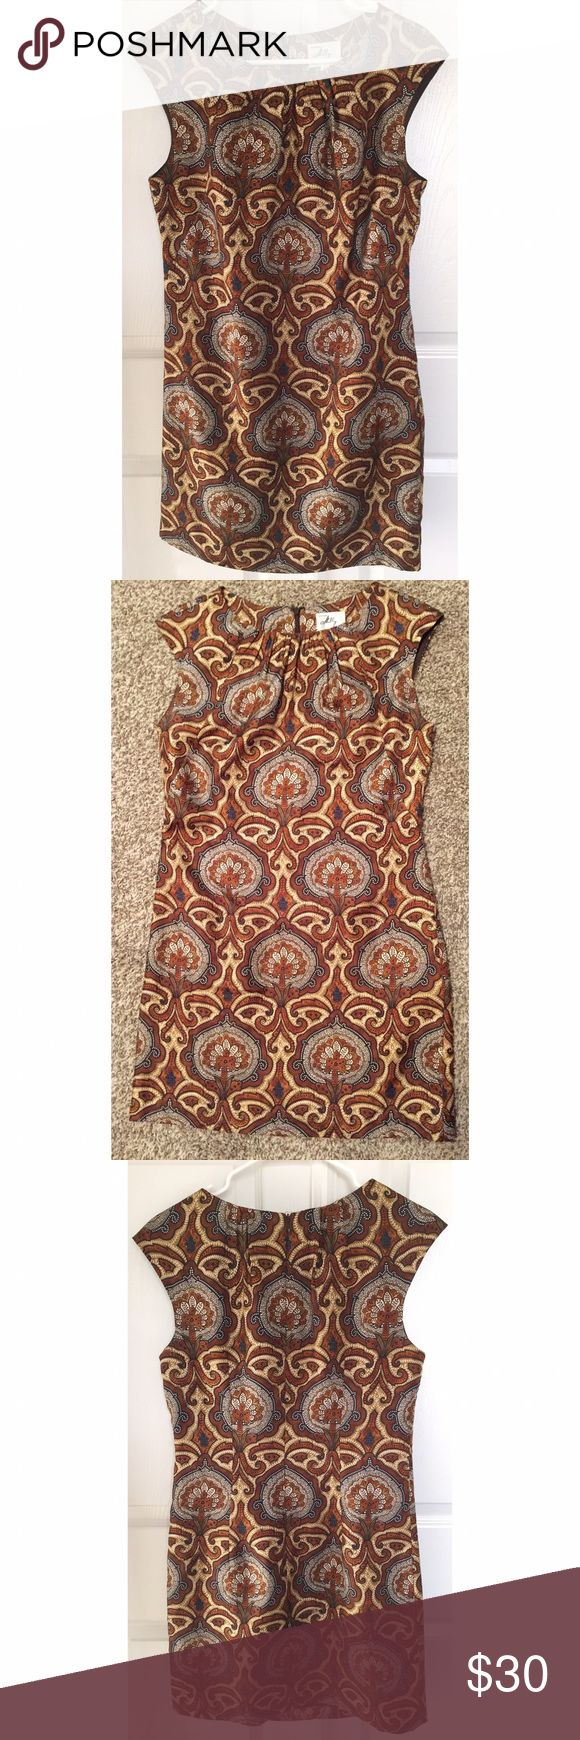 Milly Multi Pattern Brown Short Dress Sz 6 Beautiful multi color Milly dress in size 6. Paisley like fabric print style. 100% silk. Dress is fully lined. Invisible back zipper. Dress is 34 inches long. Milly Dresses